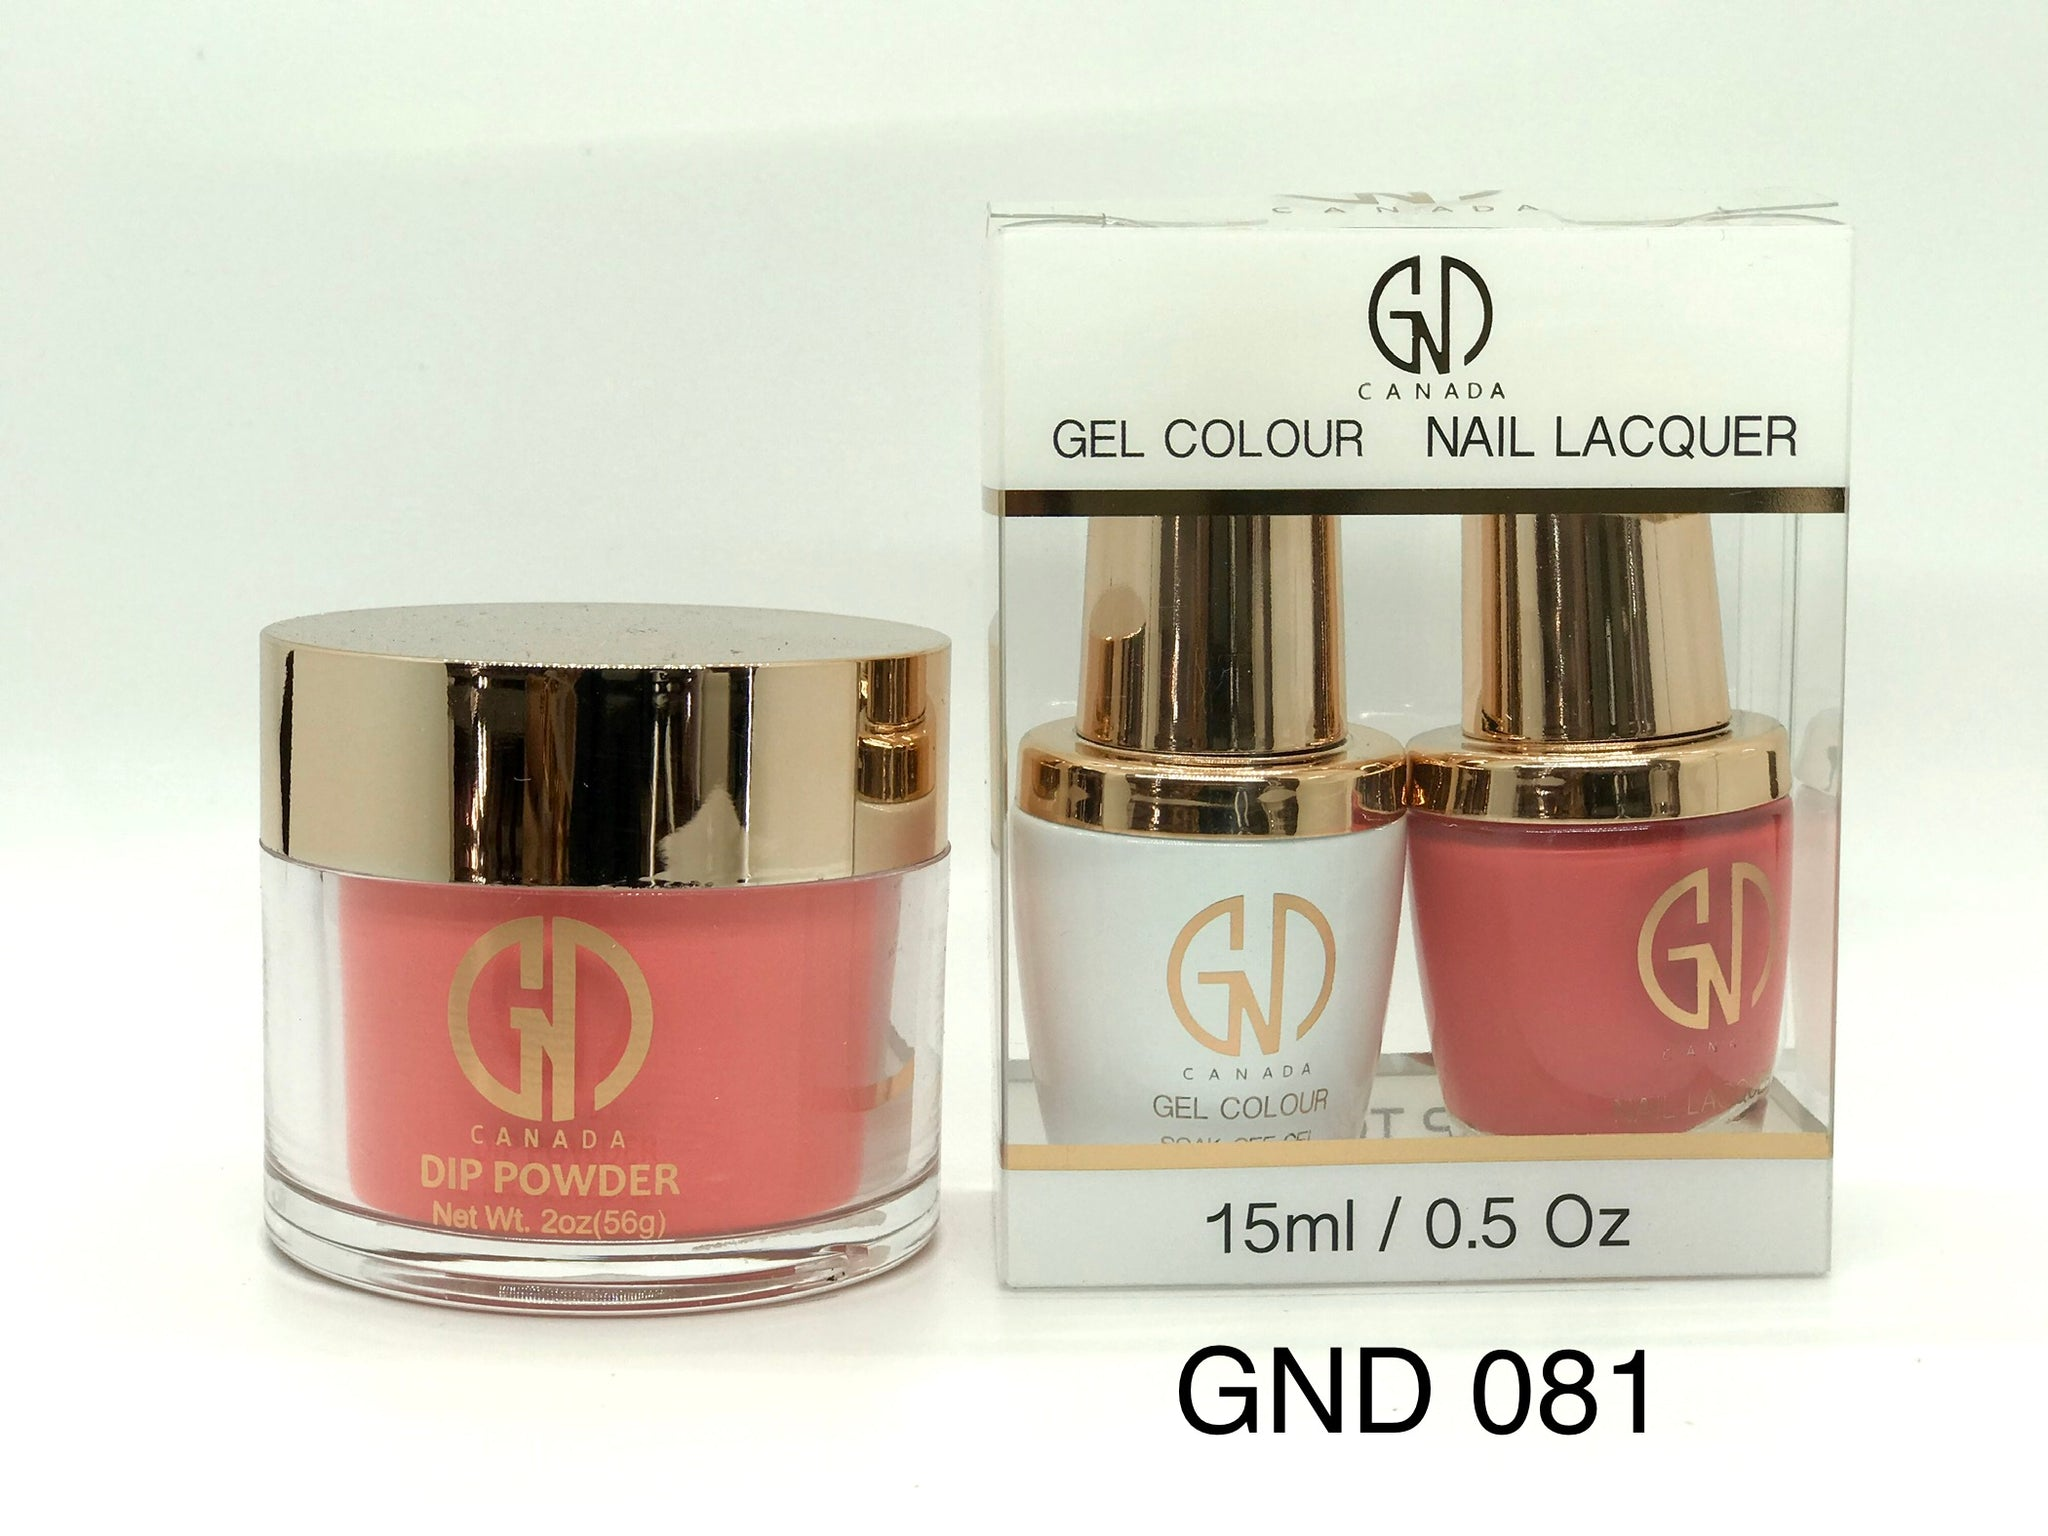 3-in-1 Nail Combo: Dip, Gel & Lacquer #081 | GND Canada® - CM Nails & Beauty Supply